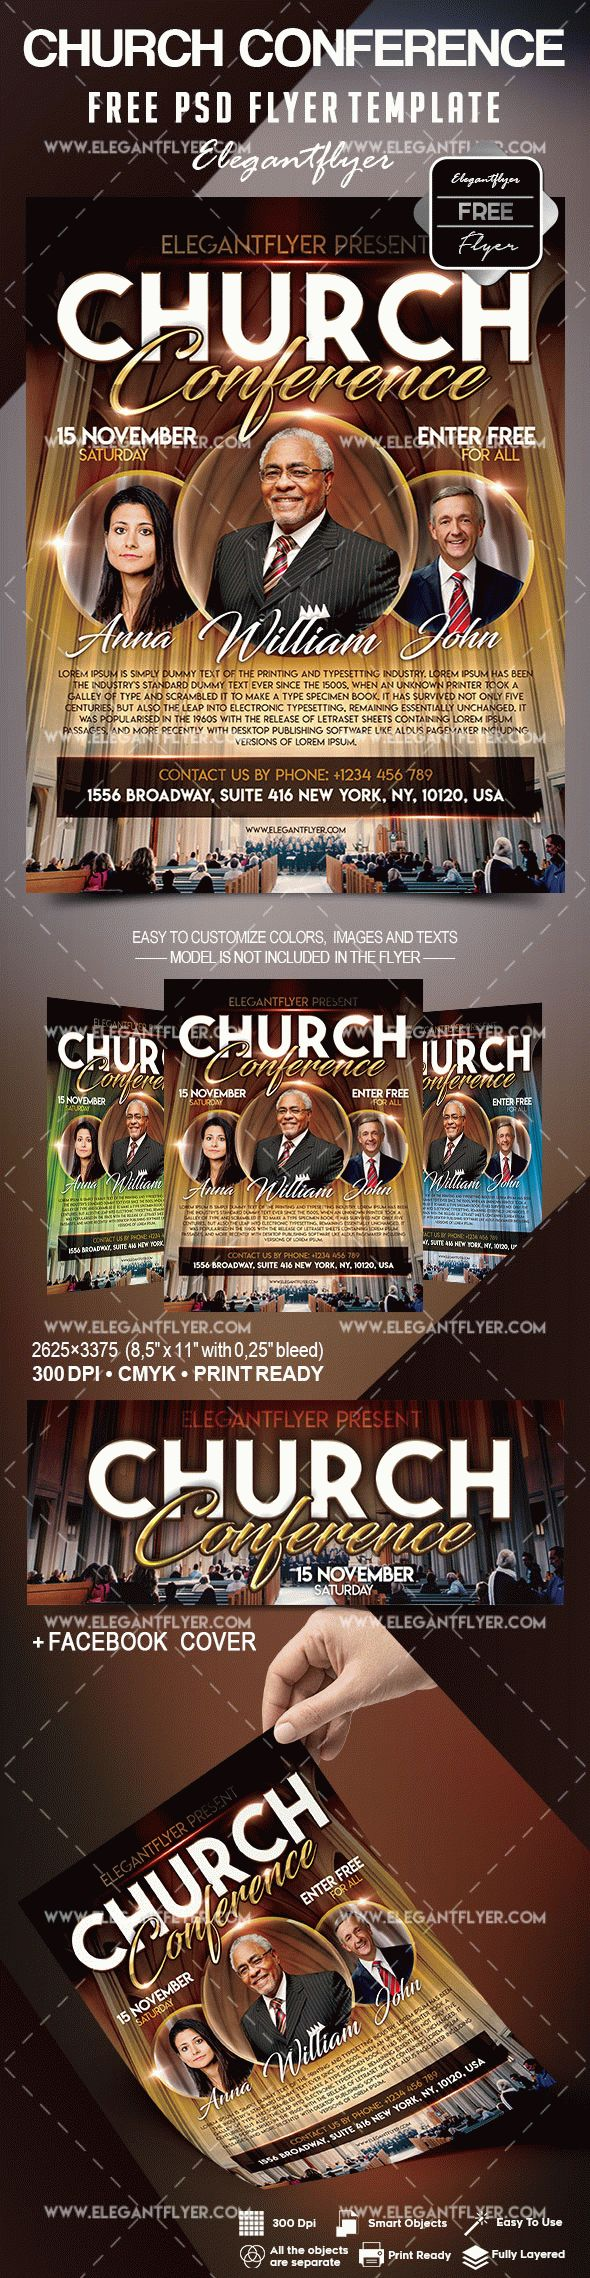 Free Church Conference Flyer Template – by ElegantFlyer